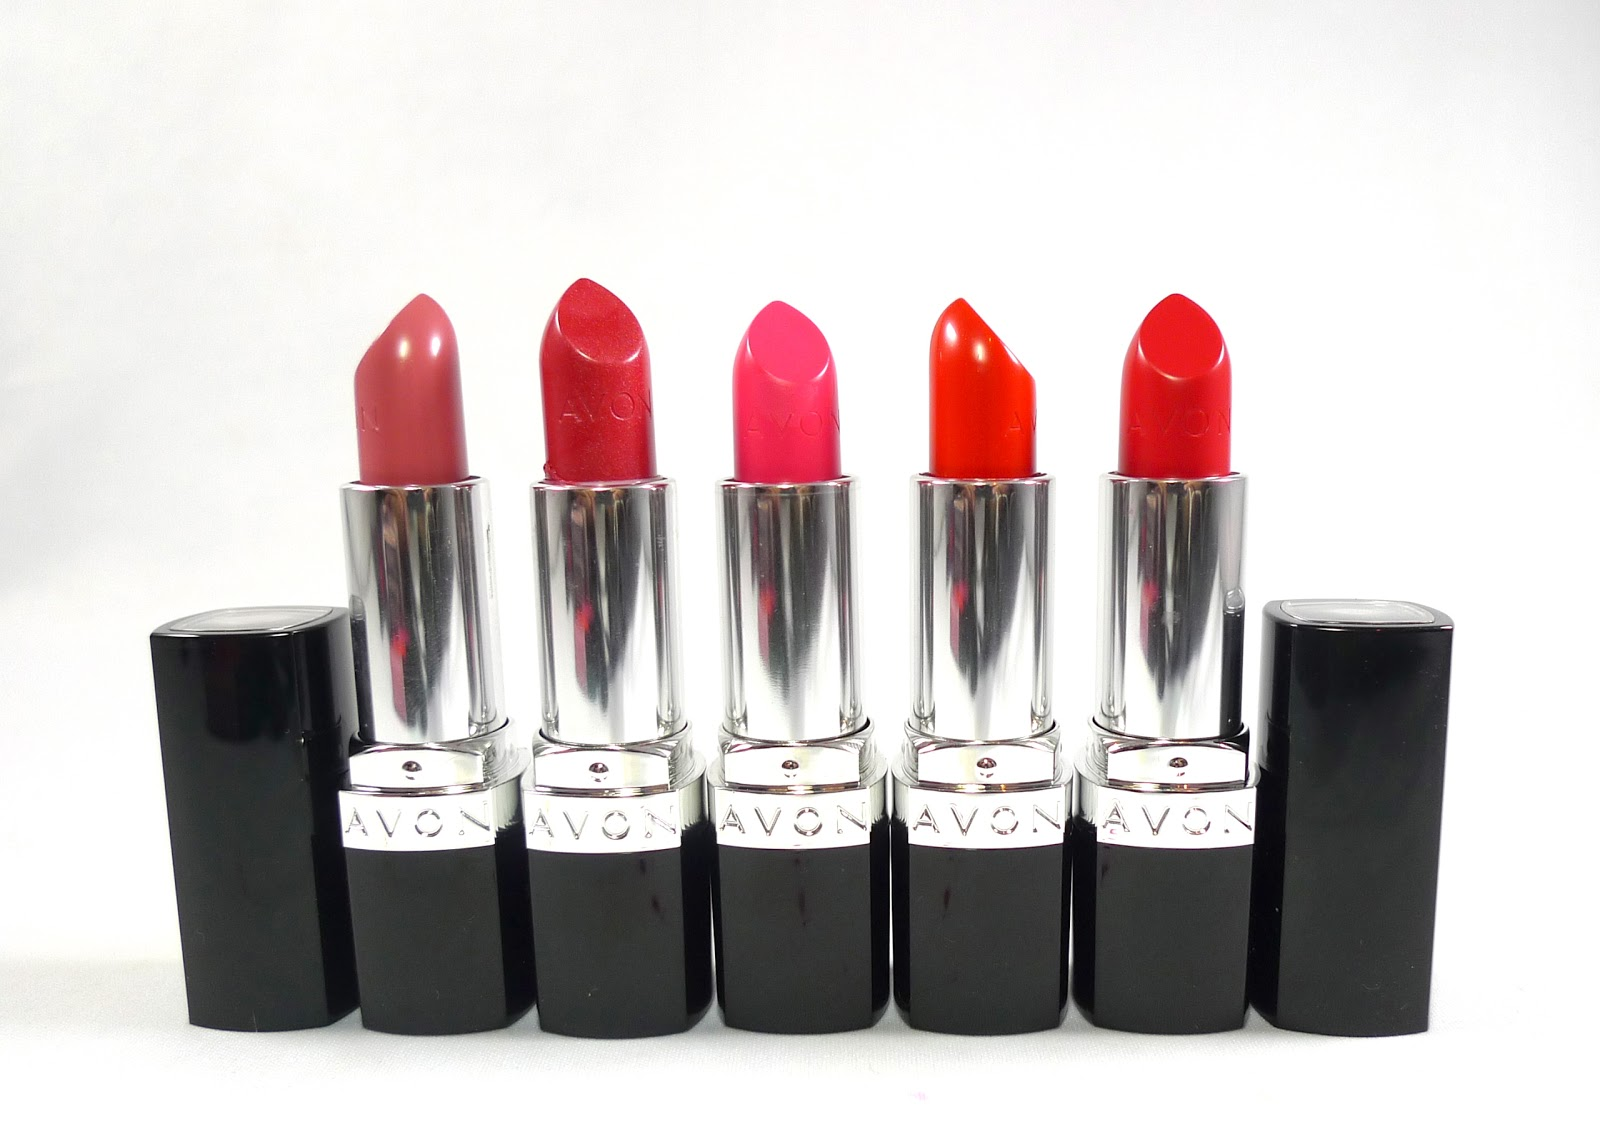 Avon Ultra Color Lipstick 1 More Than Makeup Online